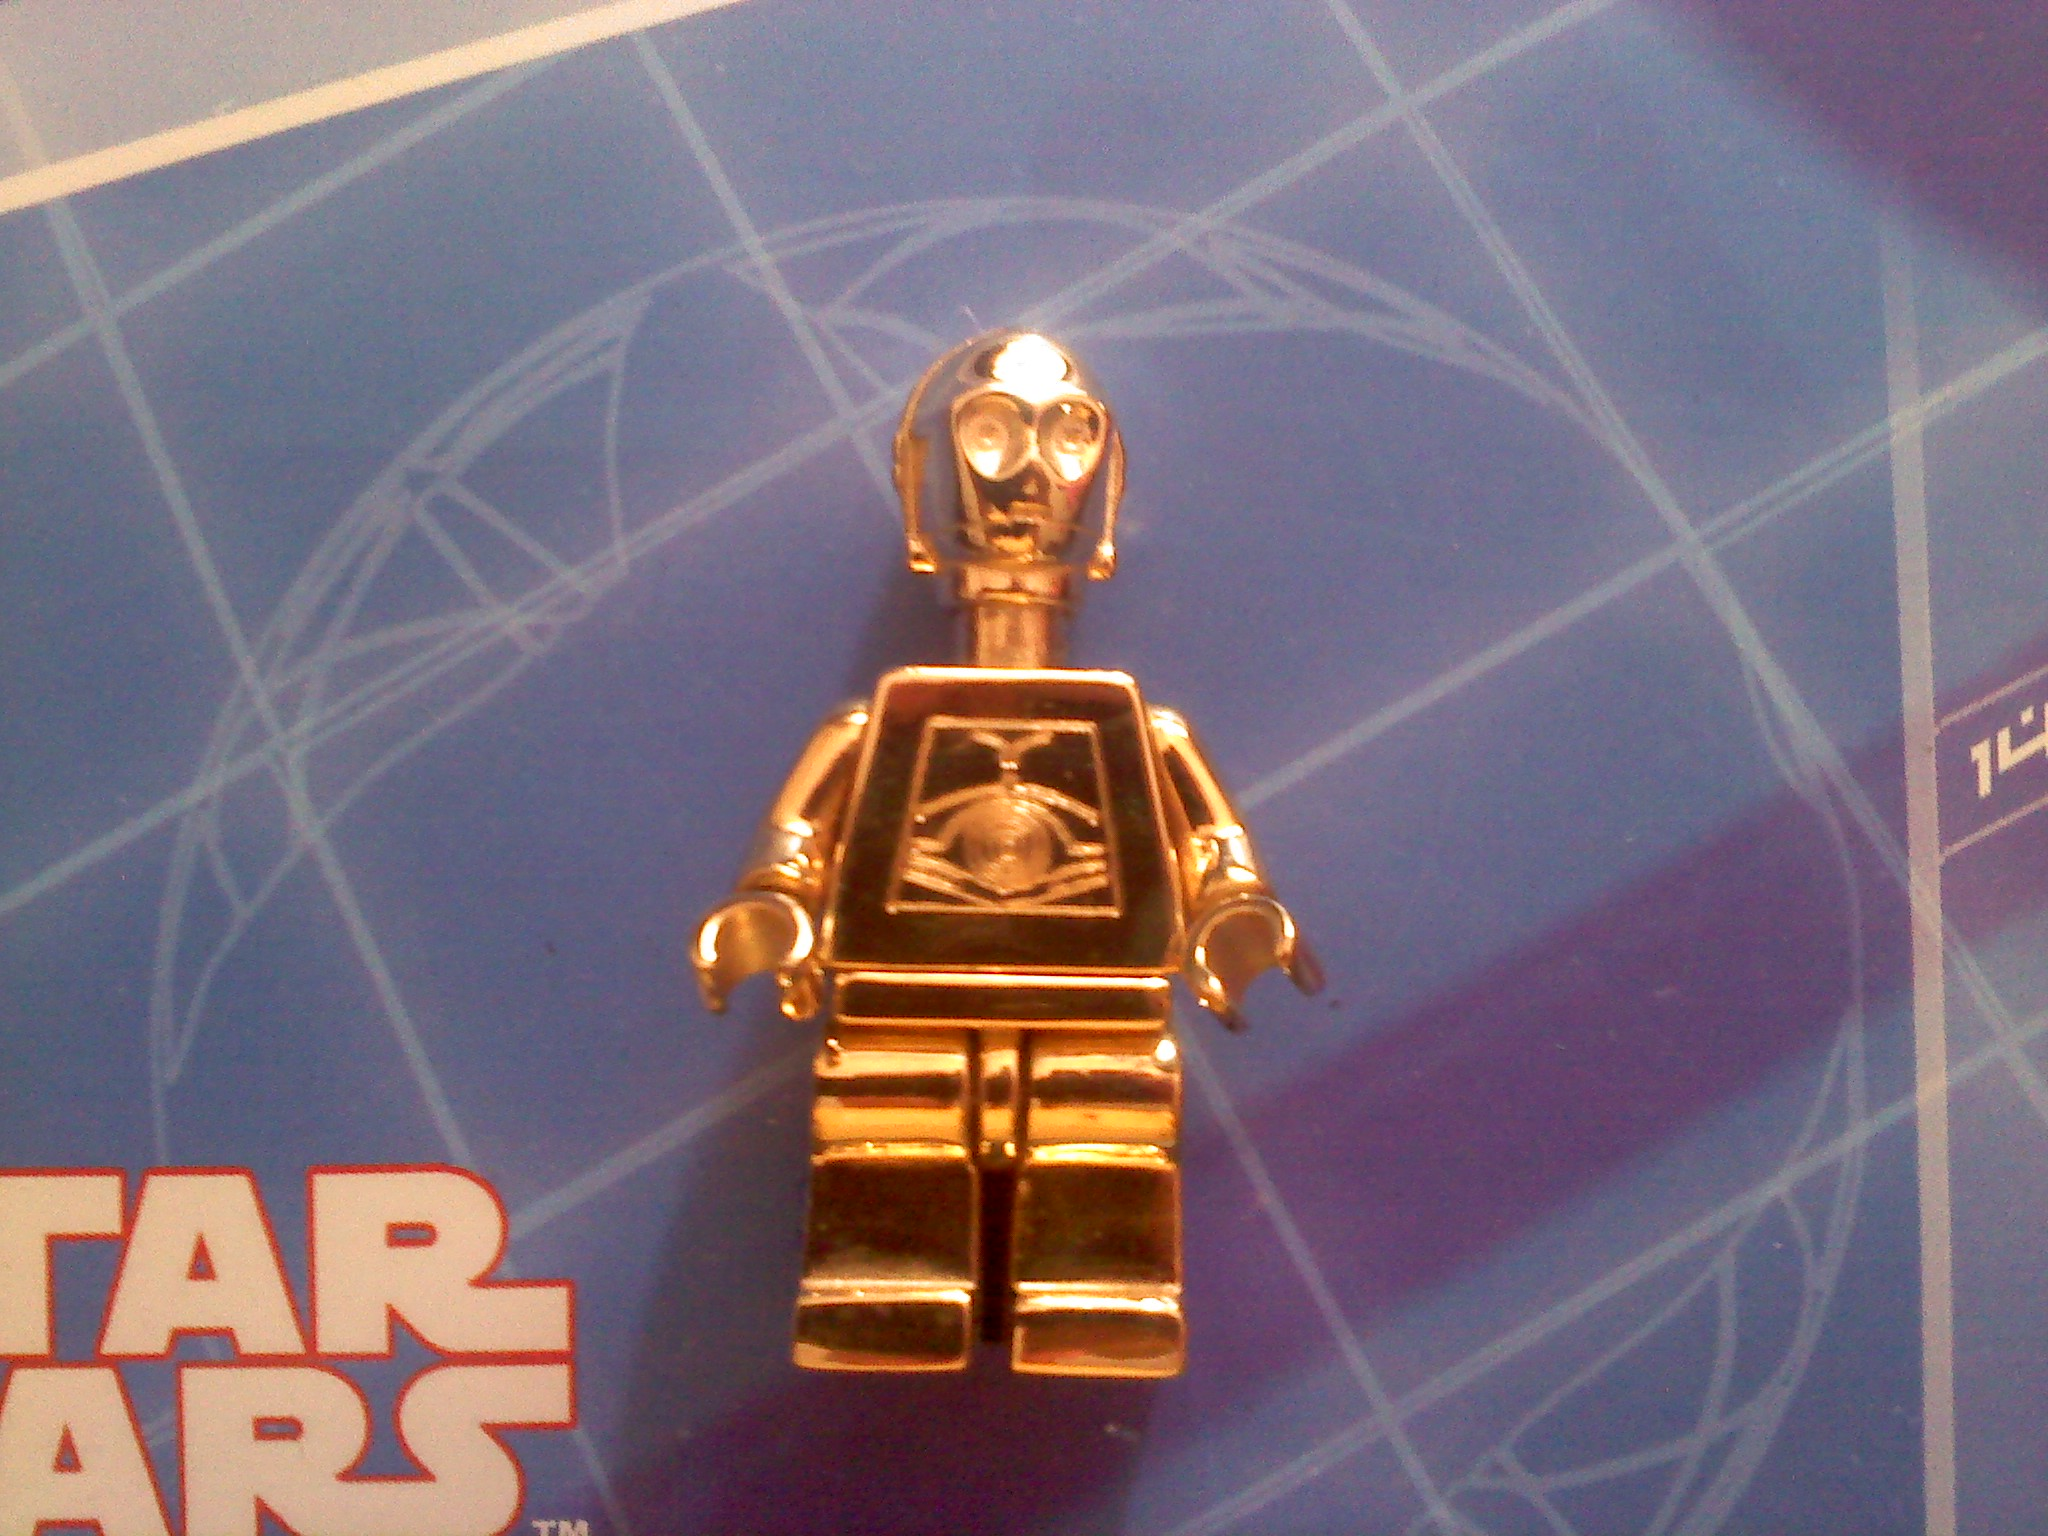 Details About The 5 Solid Gold Lego C 3po Minifigures Given Away By Lego Where Did They Go Minifigure Price Guide